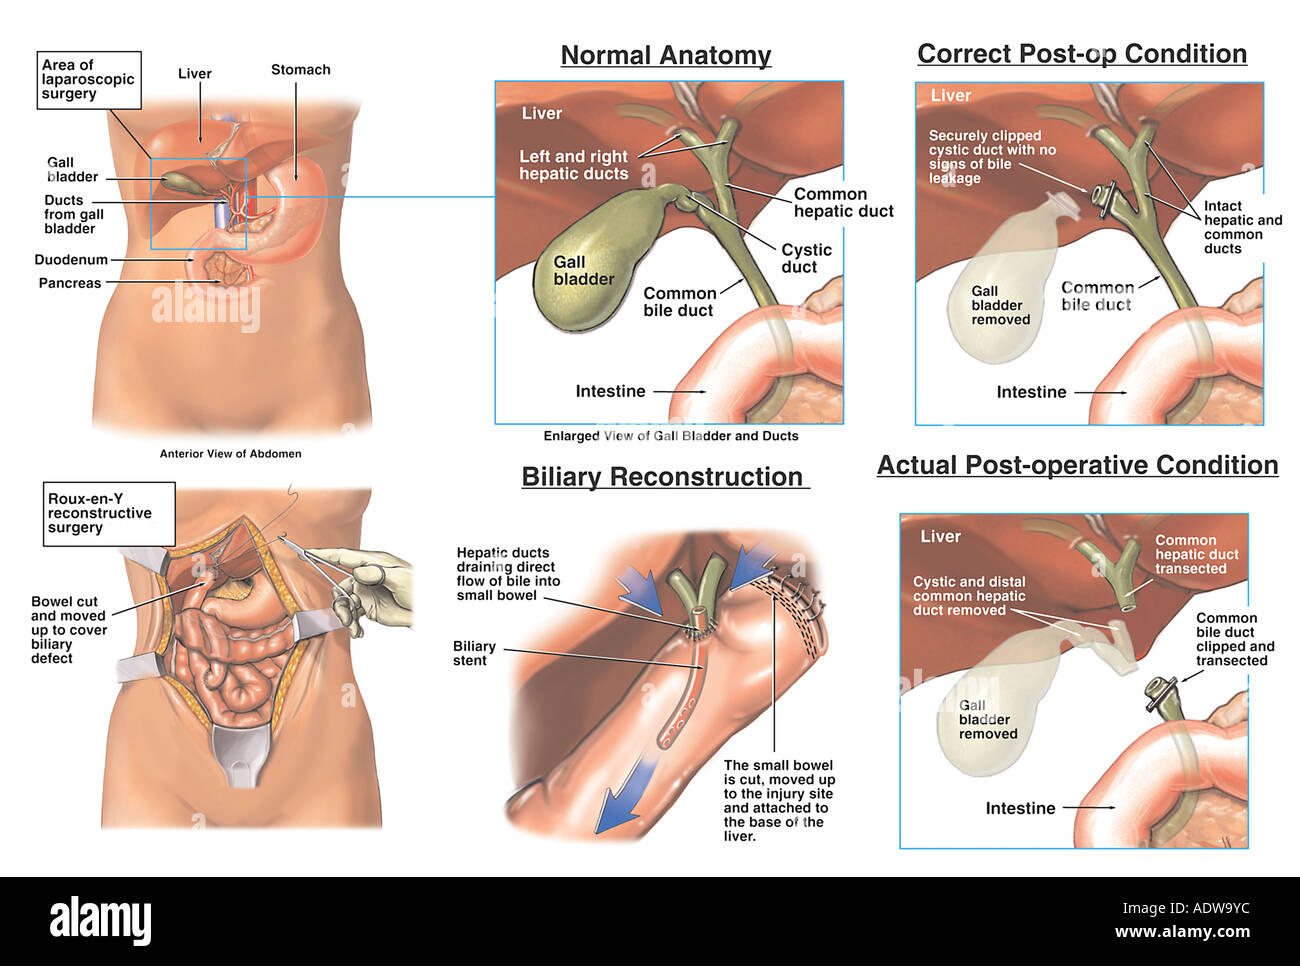 Laparoscopic Cholecystectomy Gallbladder Removal Procedure With